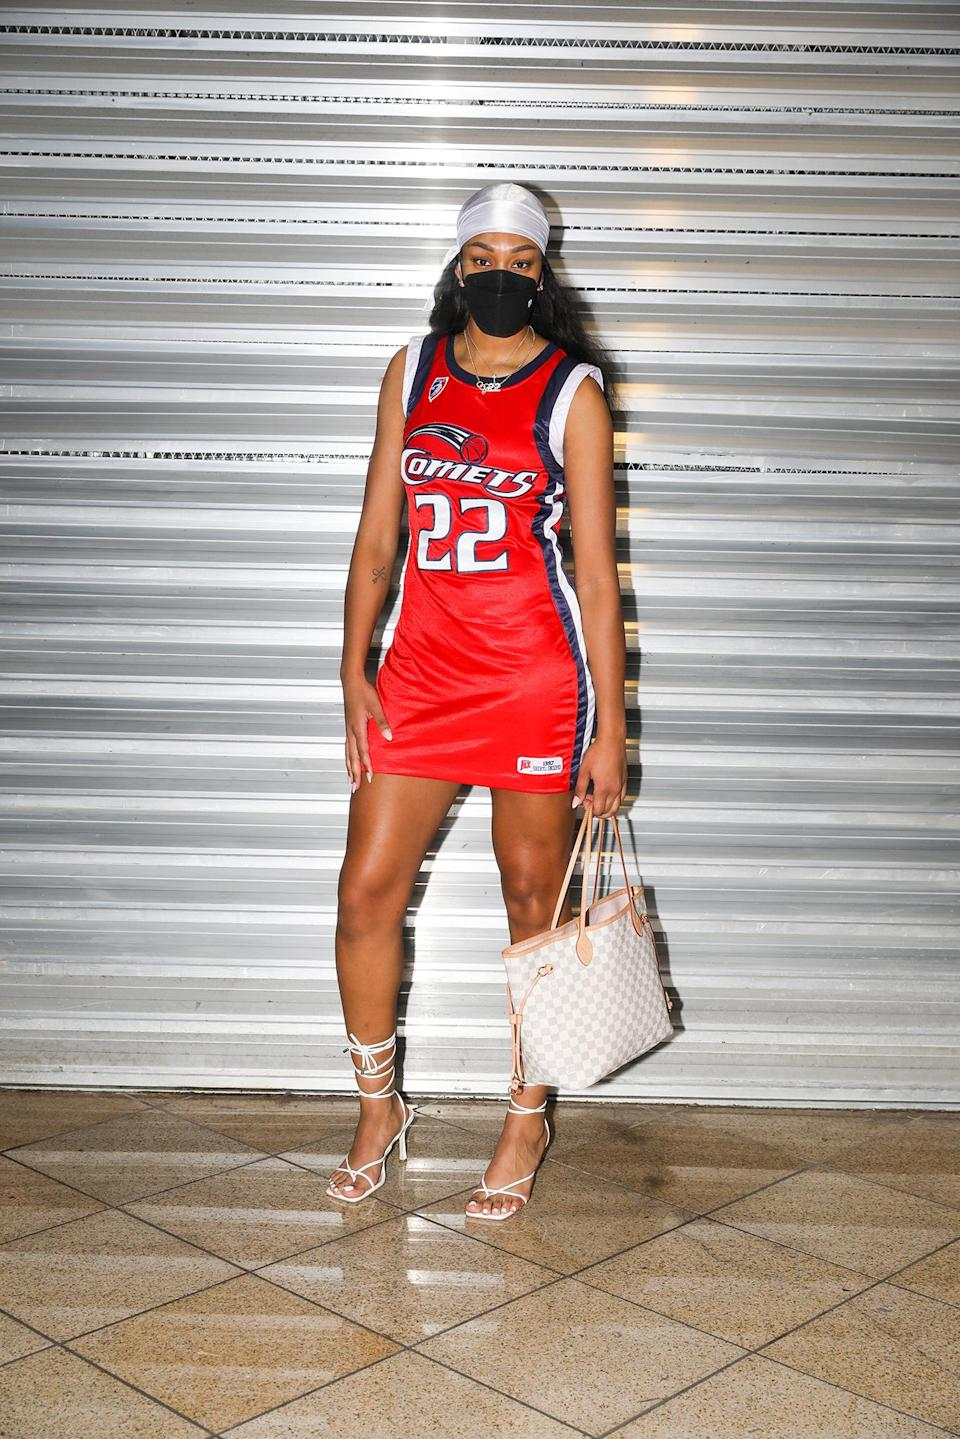 Las Vegas Aces star A'ja Wilson in a custom jersey dress of Sheryl Swoopes' Houston Comets jersey. - Credit: Kyle Lumague